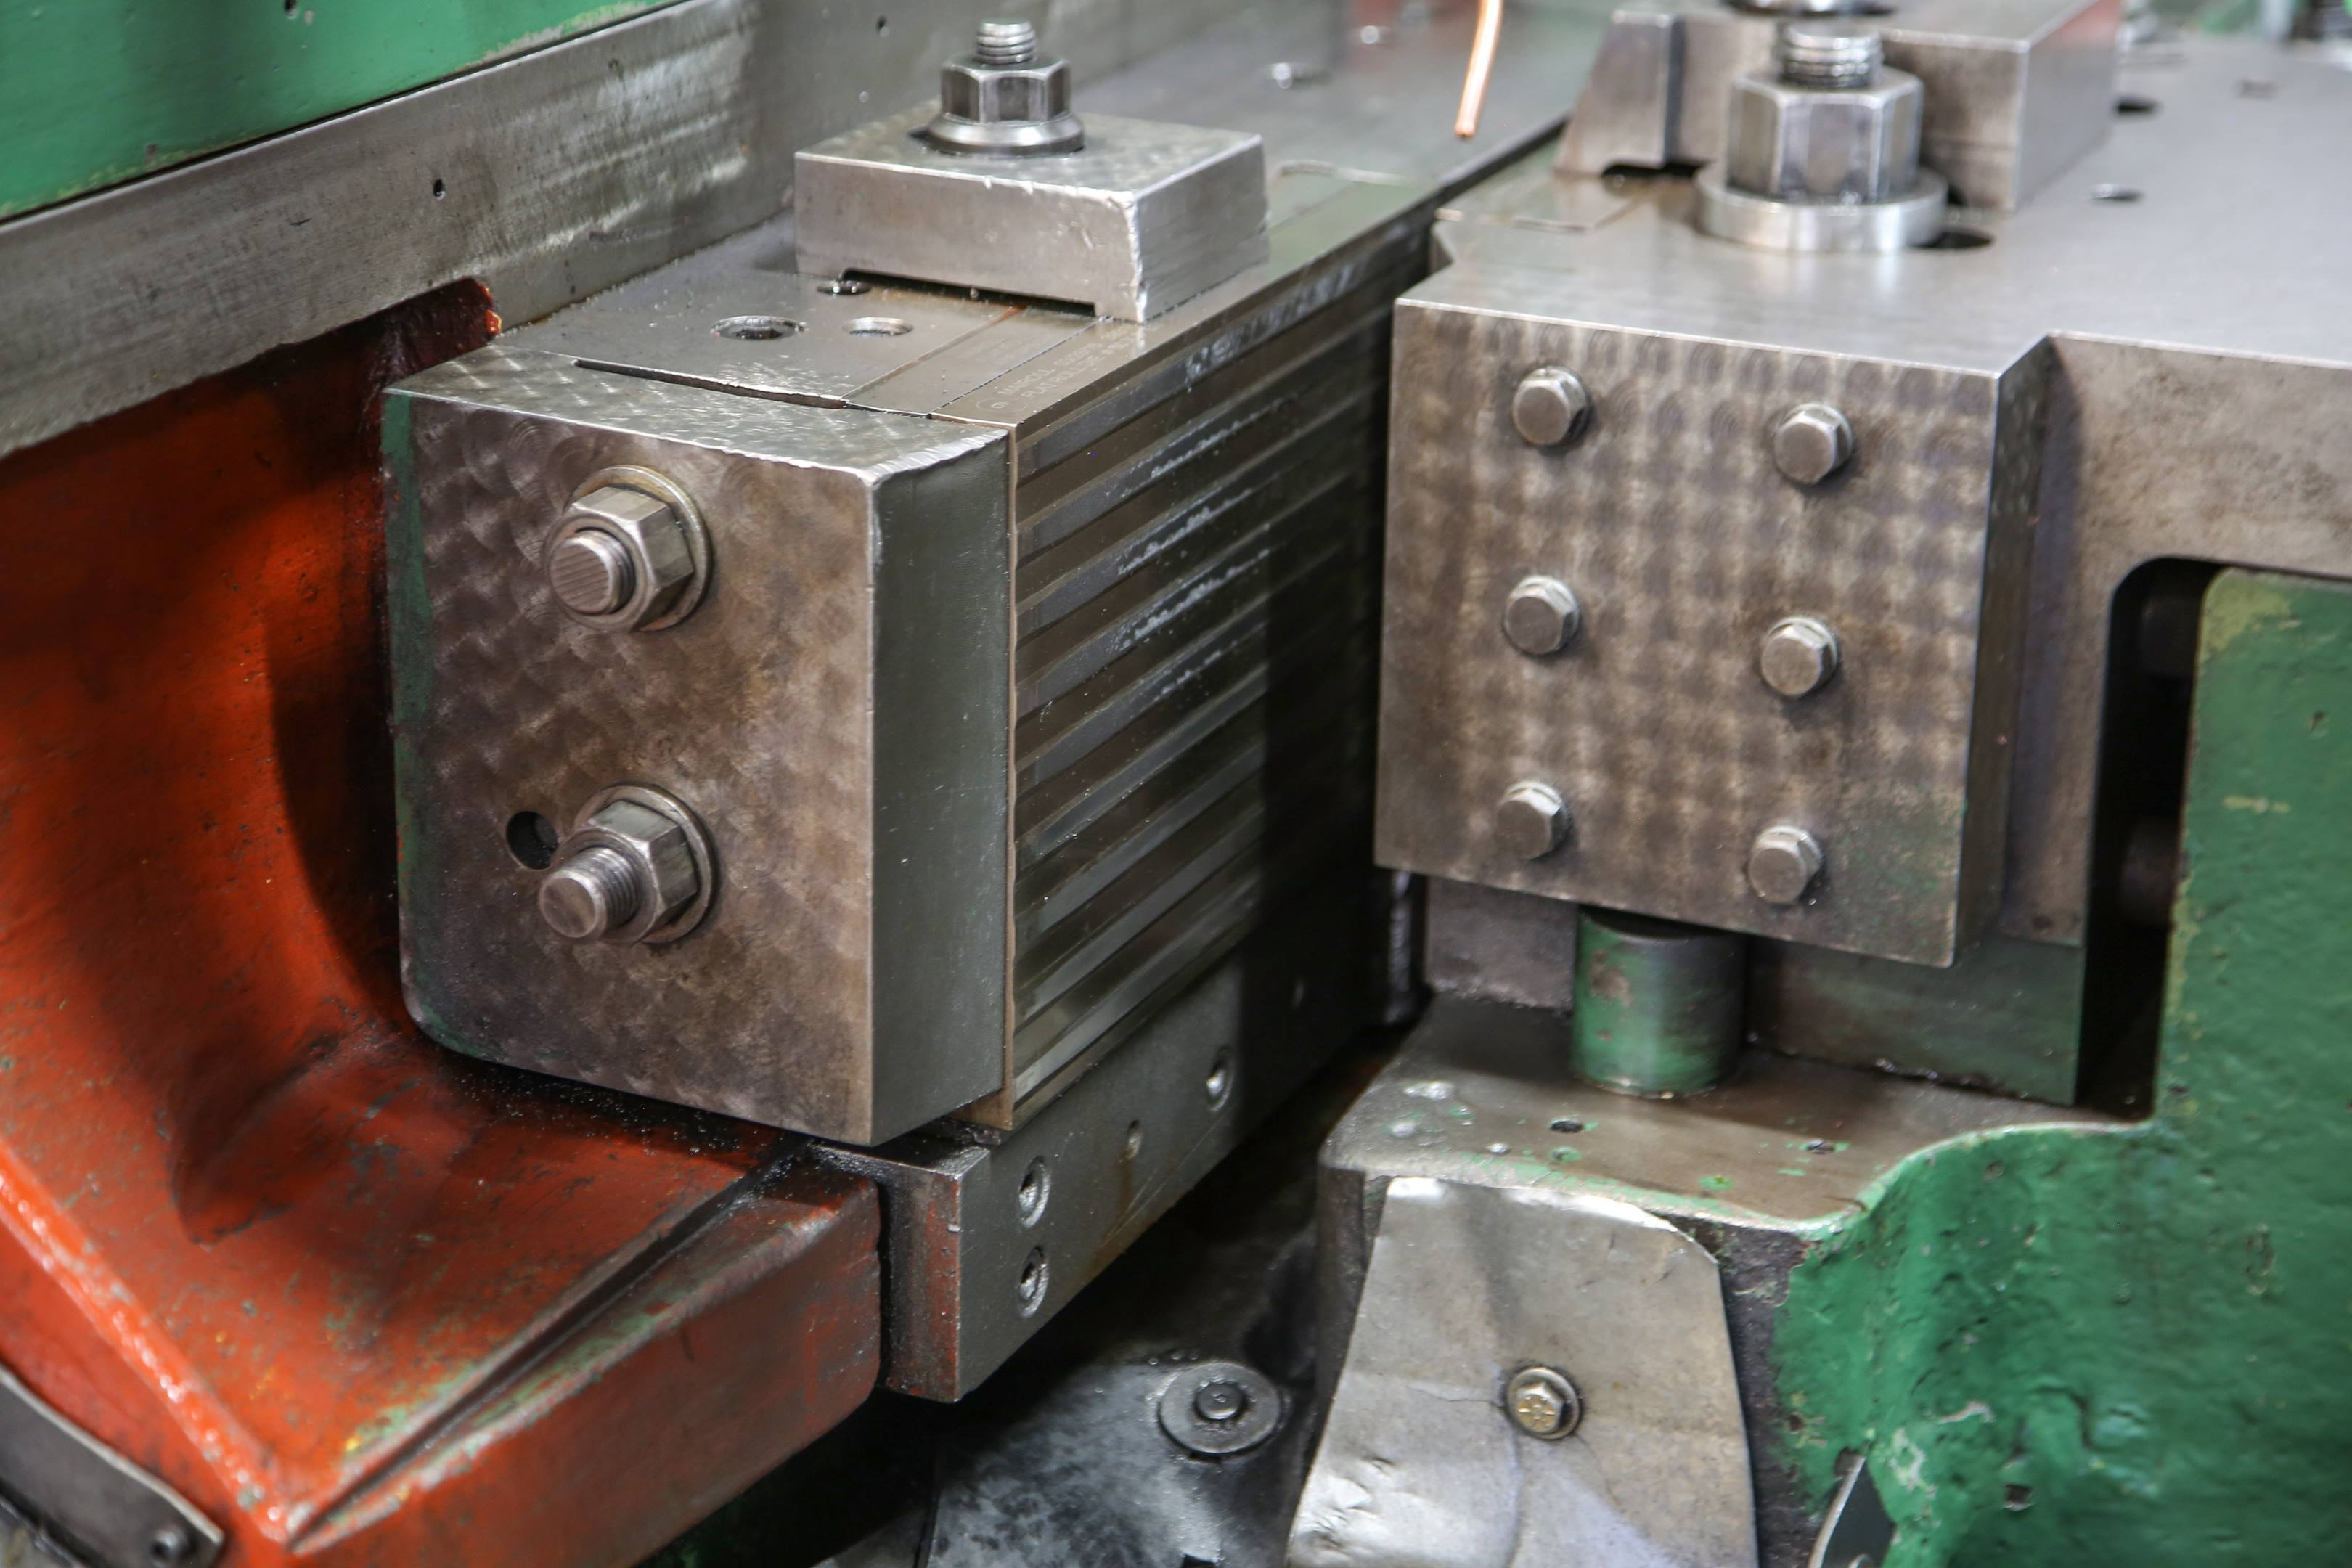 A close-up of the machine shows the ridges in the die on the reciprocating side.